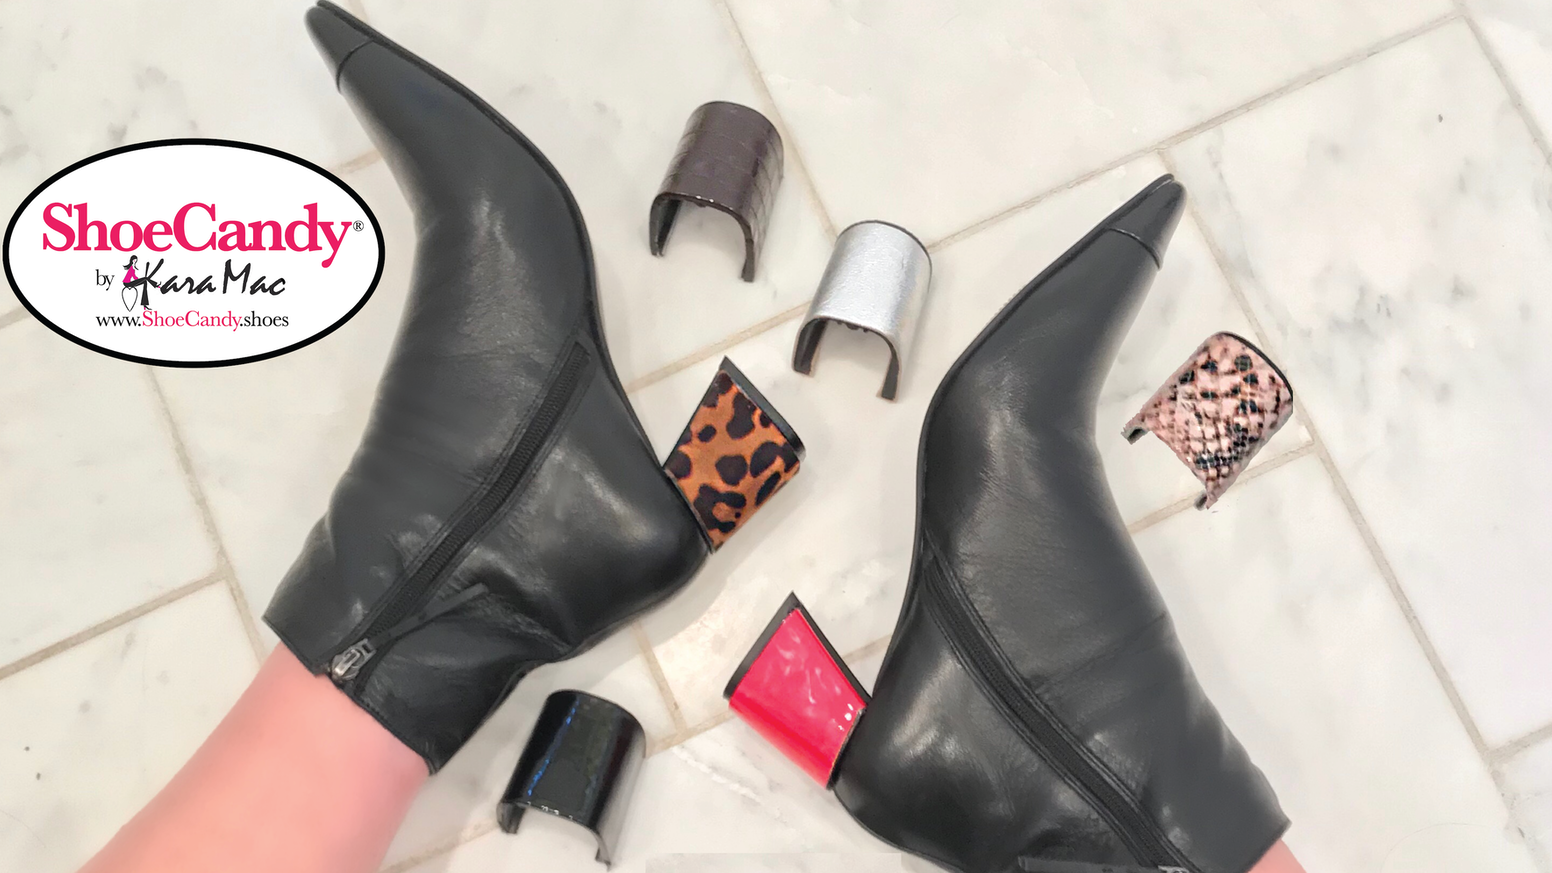 The BOHO BOOT with Instantly Swappable Heel Covers. Own 1 Boot- Wear Many Looks There's still a little time to Pre Order at discounted rates. Click the link below-----